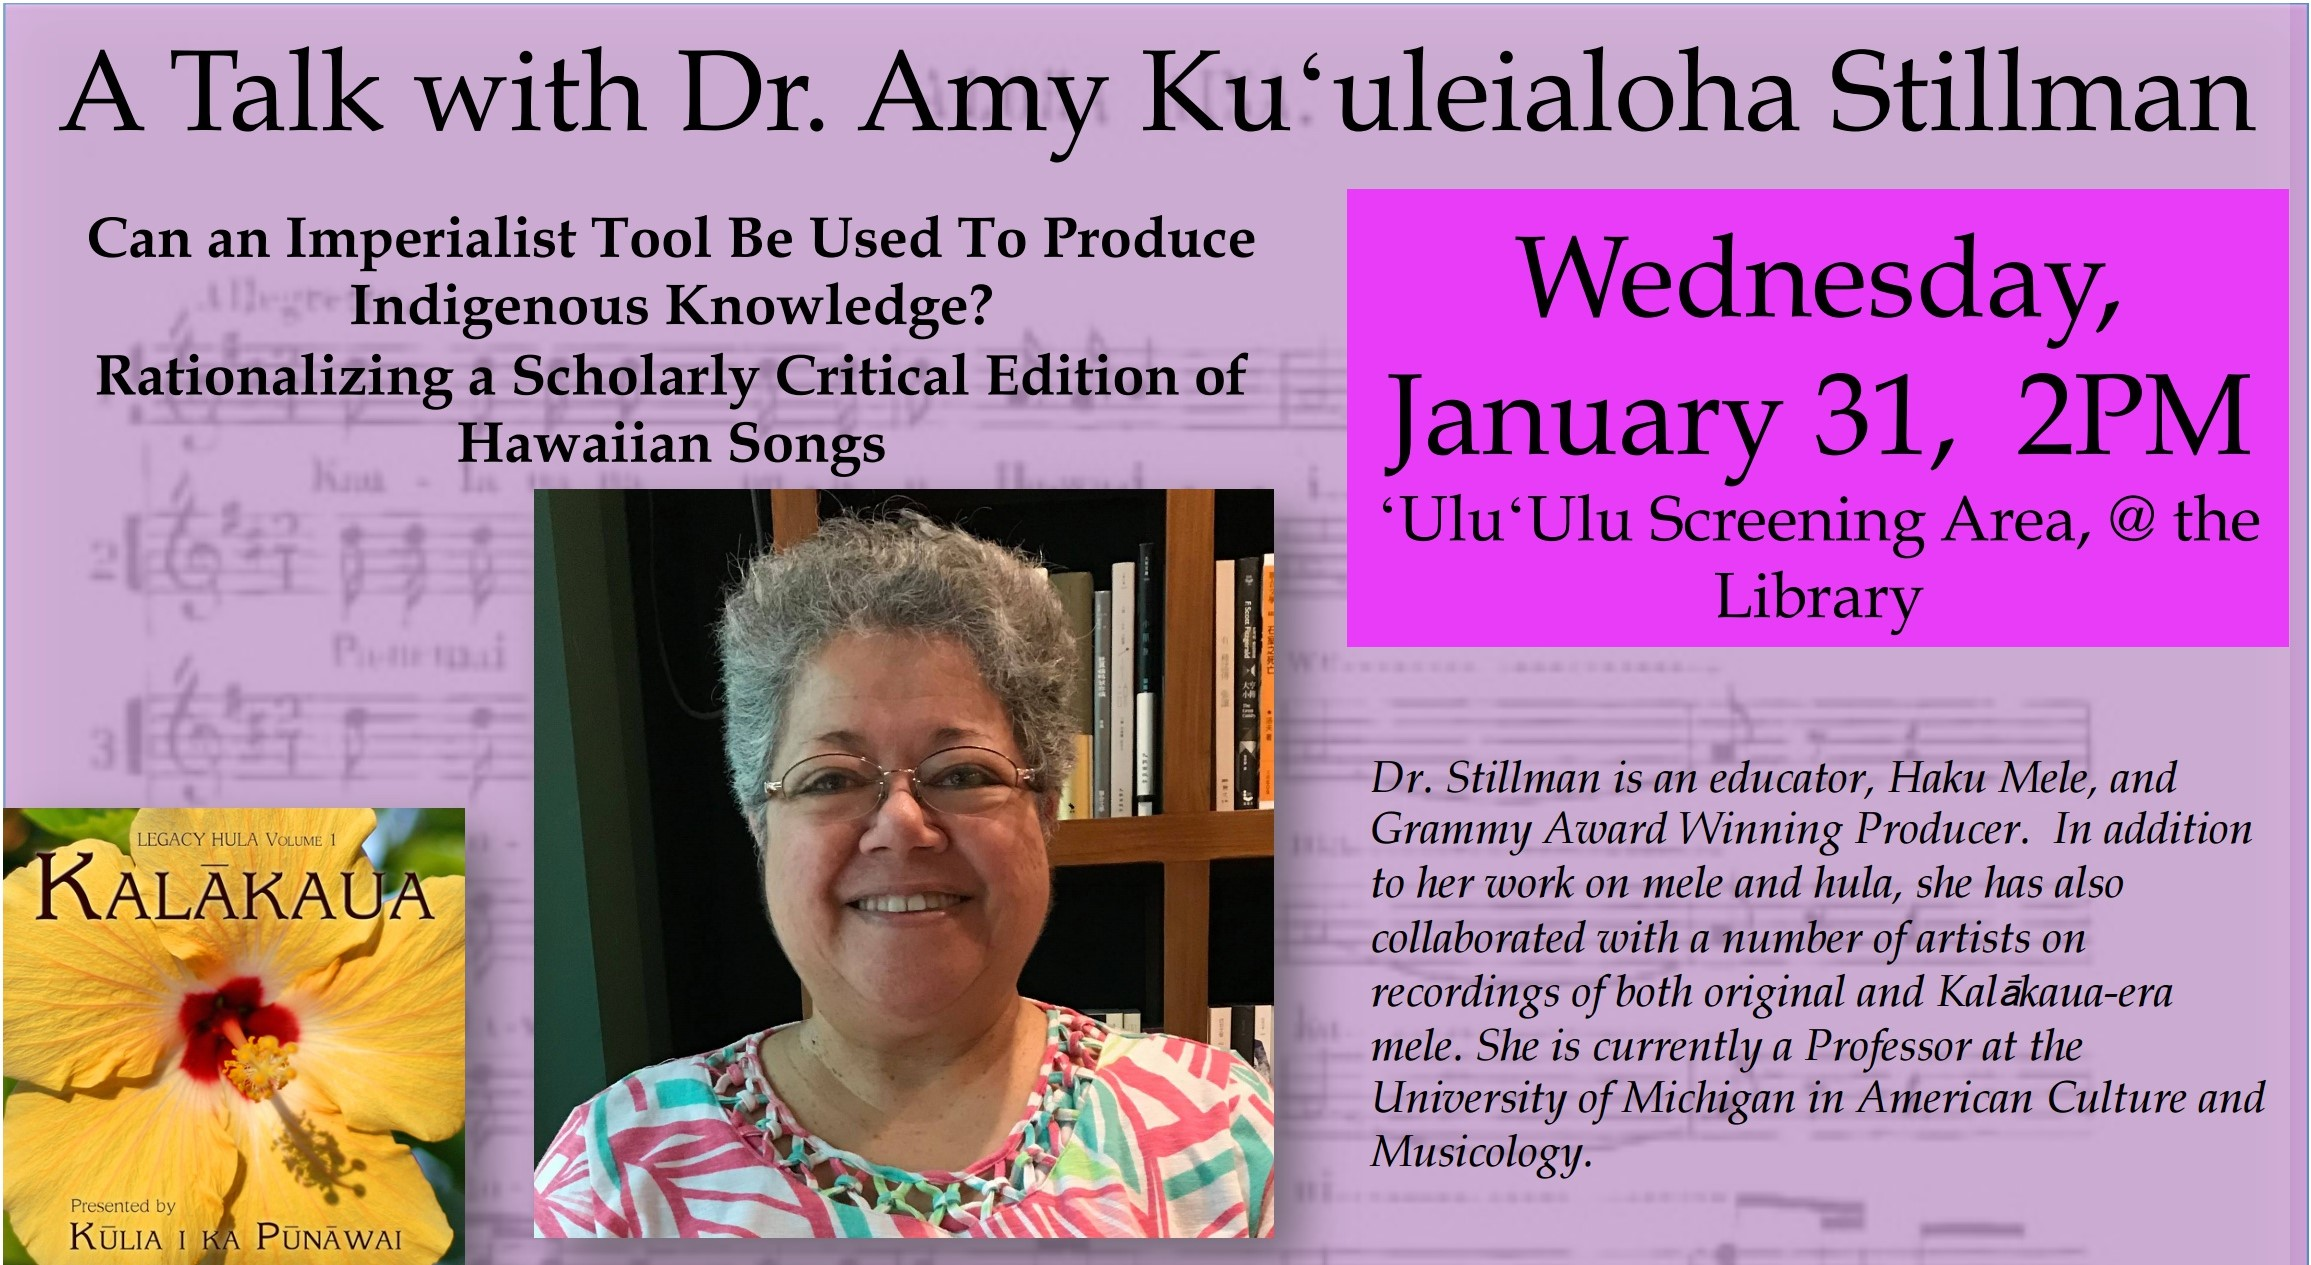 Flyer for Amy Stillman talk that presents information similar to what is in the article